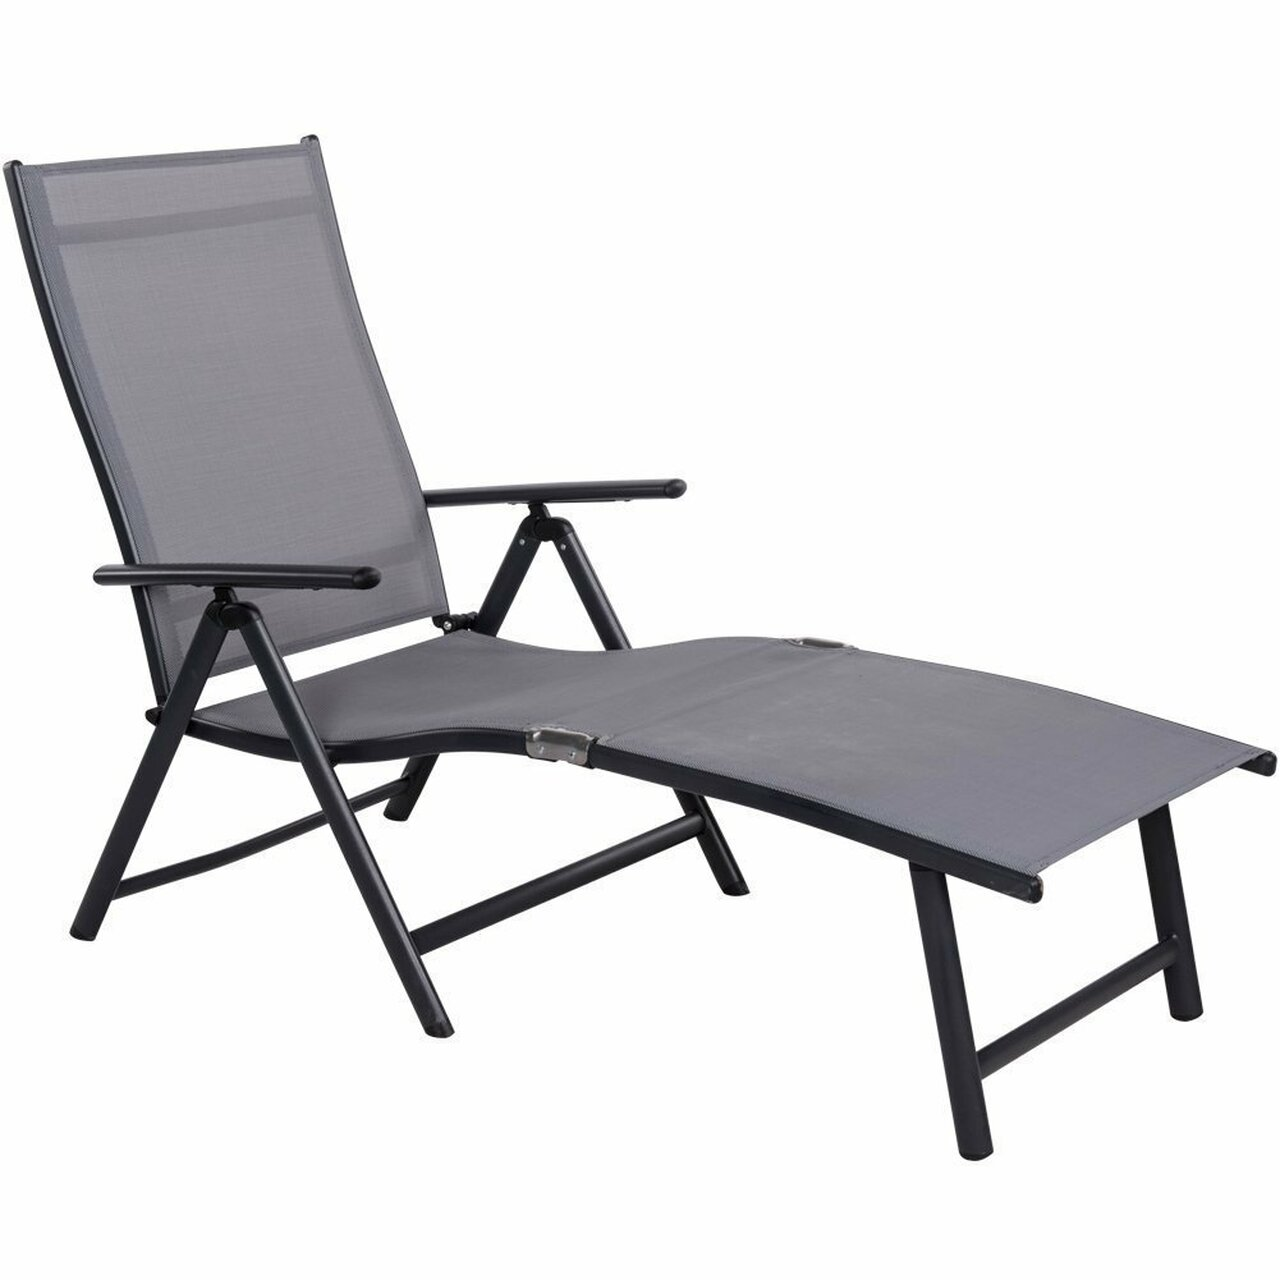 Deluxe Aluminum Beach Yard Pool Folding Chaise Lounge Chair Recliner Outdoor Patio  sc 1 st  Sundale Outdoor : aluminum folding chaise lounge chairs - Sectionals, Sofas & Couches